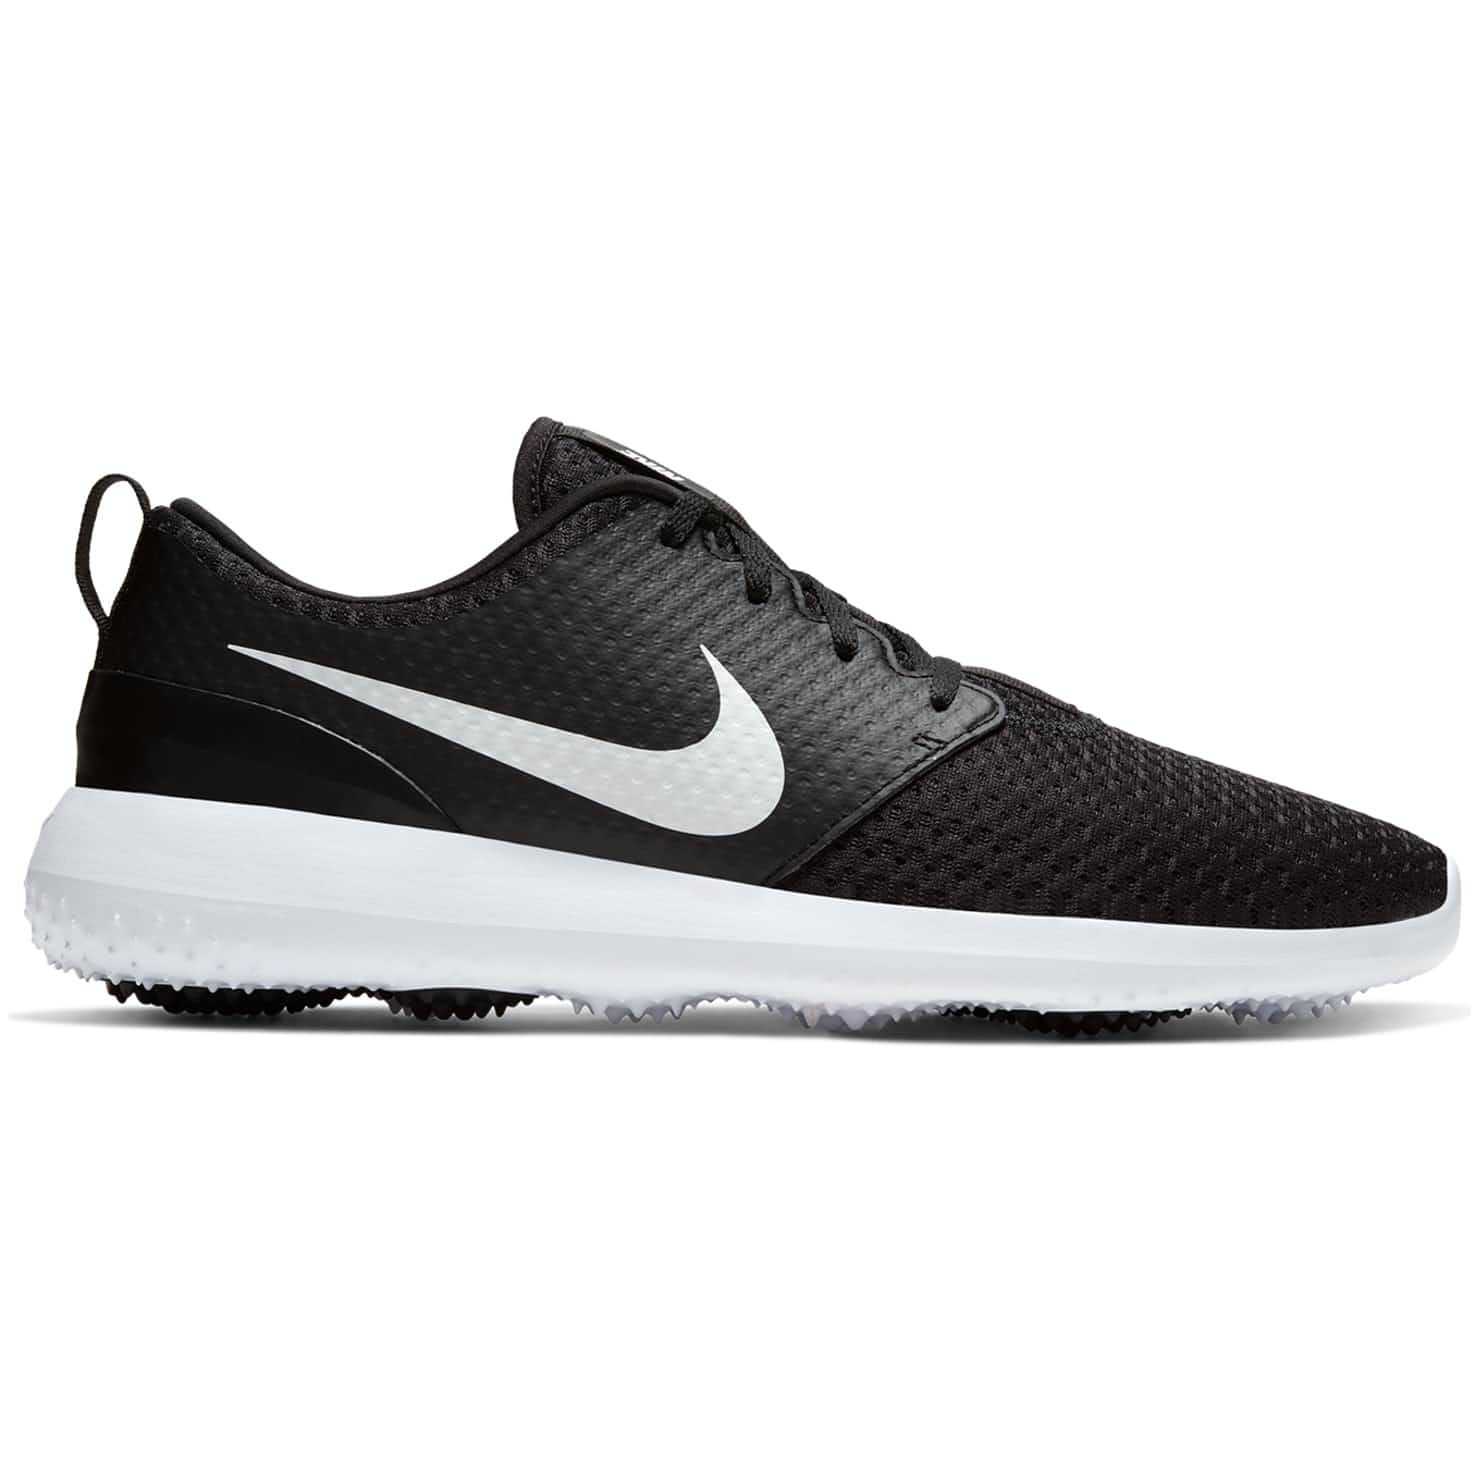 Roshe Golf Black/White - SS20